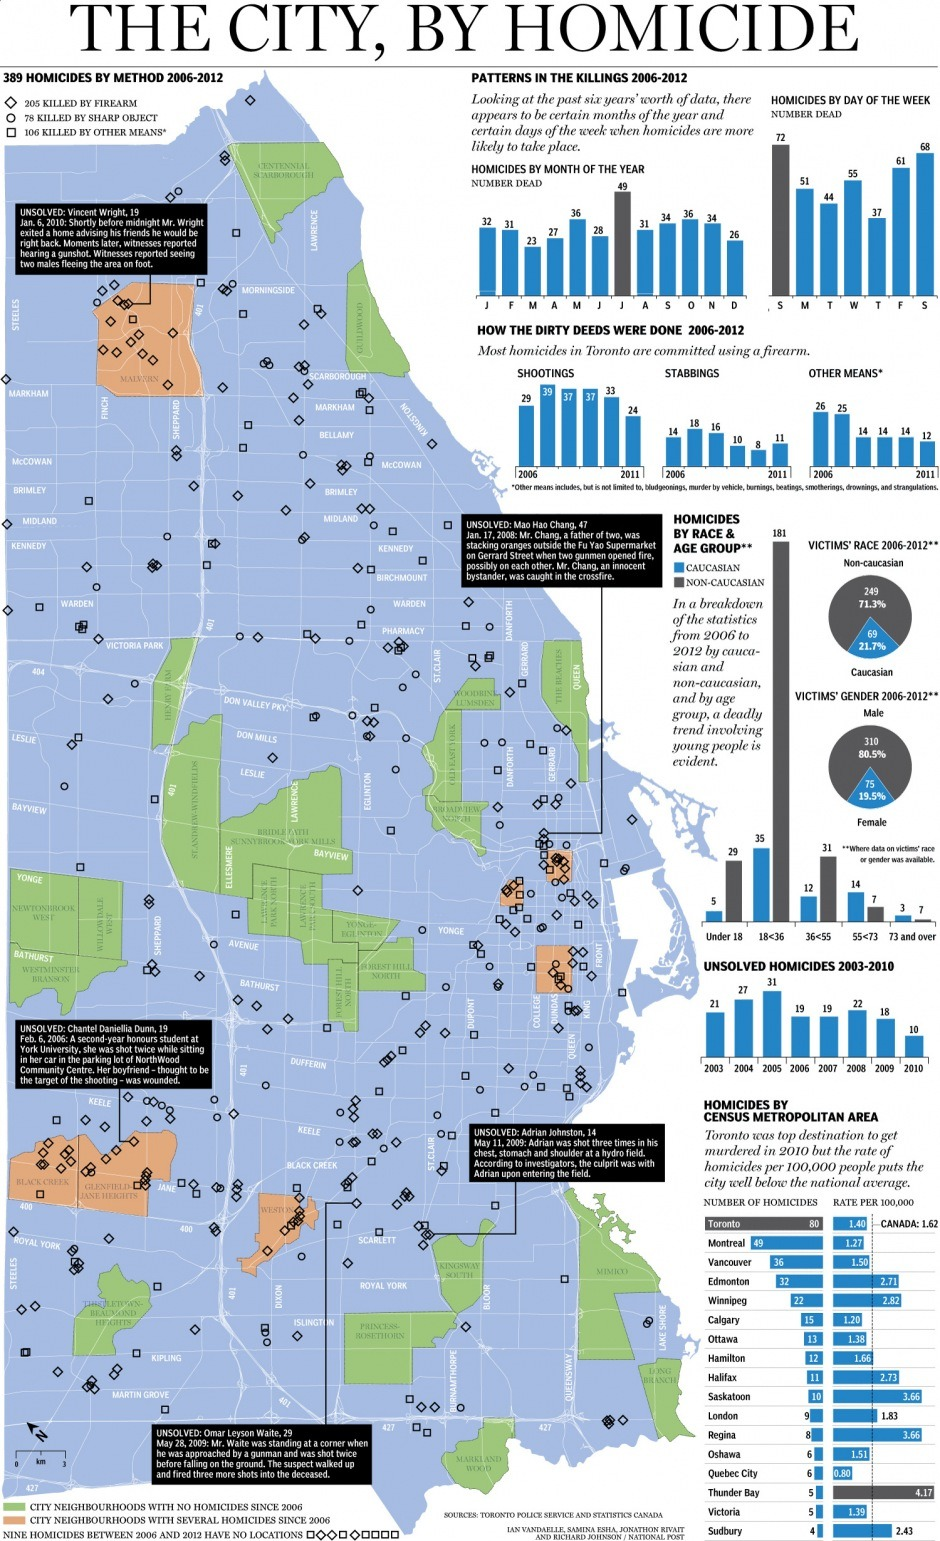 Graphic: Where are Toronto's murders happening? When Justin and Jerome Waterman were found on Feb. 20, shot in the head in a North York parking garage, the 2012 Toronto homicide total climbed to eight. But focusing soley on the year-to-date caseload ignores what came before. A look at the locations of the homicides since 2006 reveals a lot about our city.